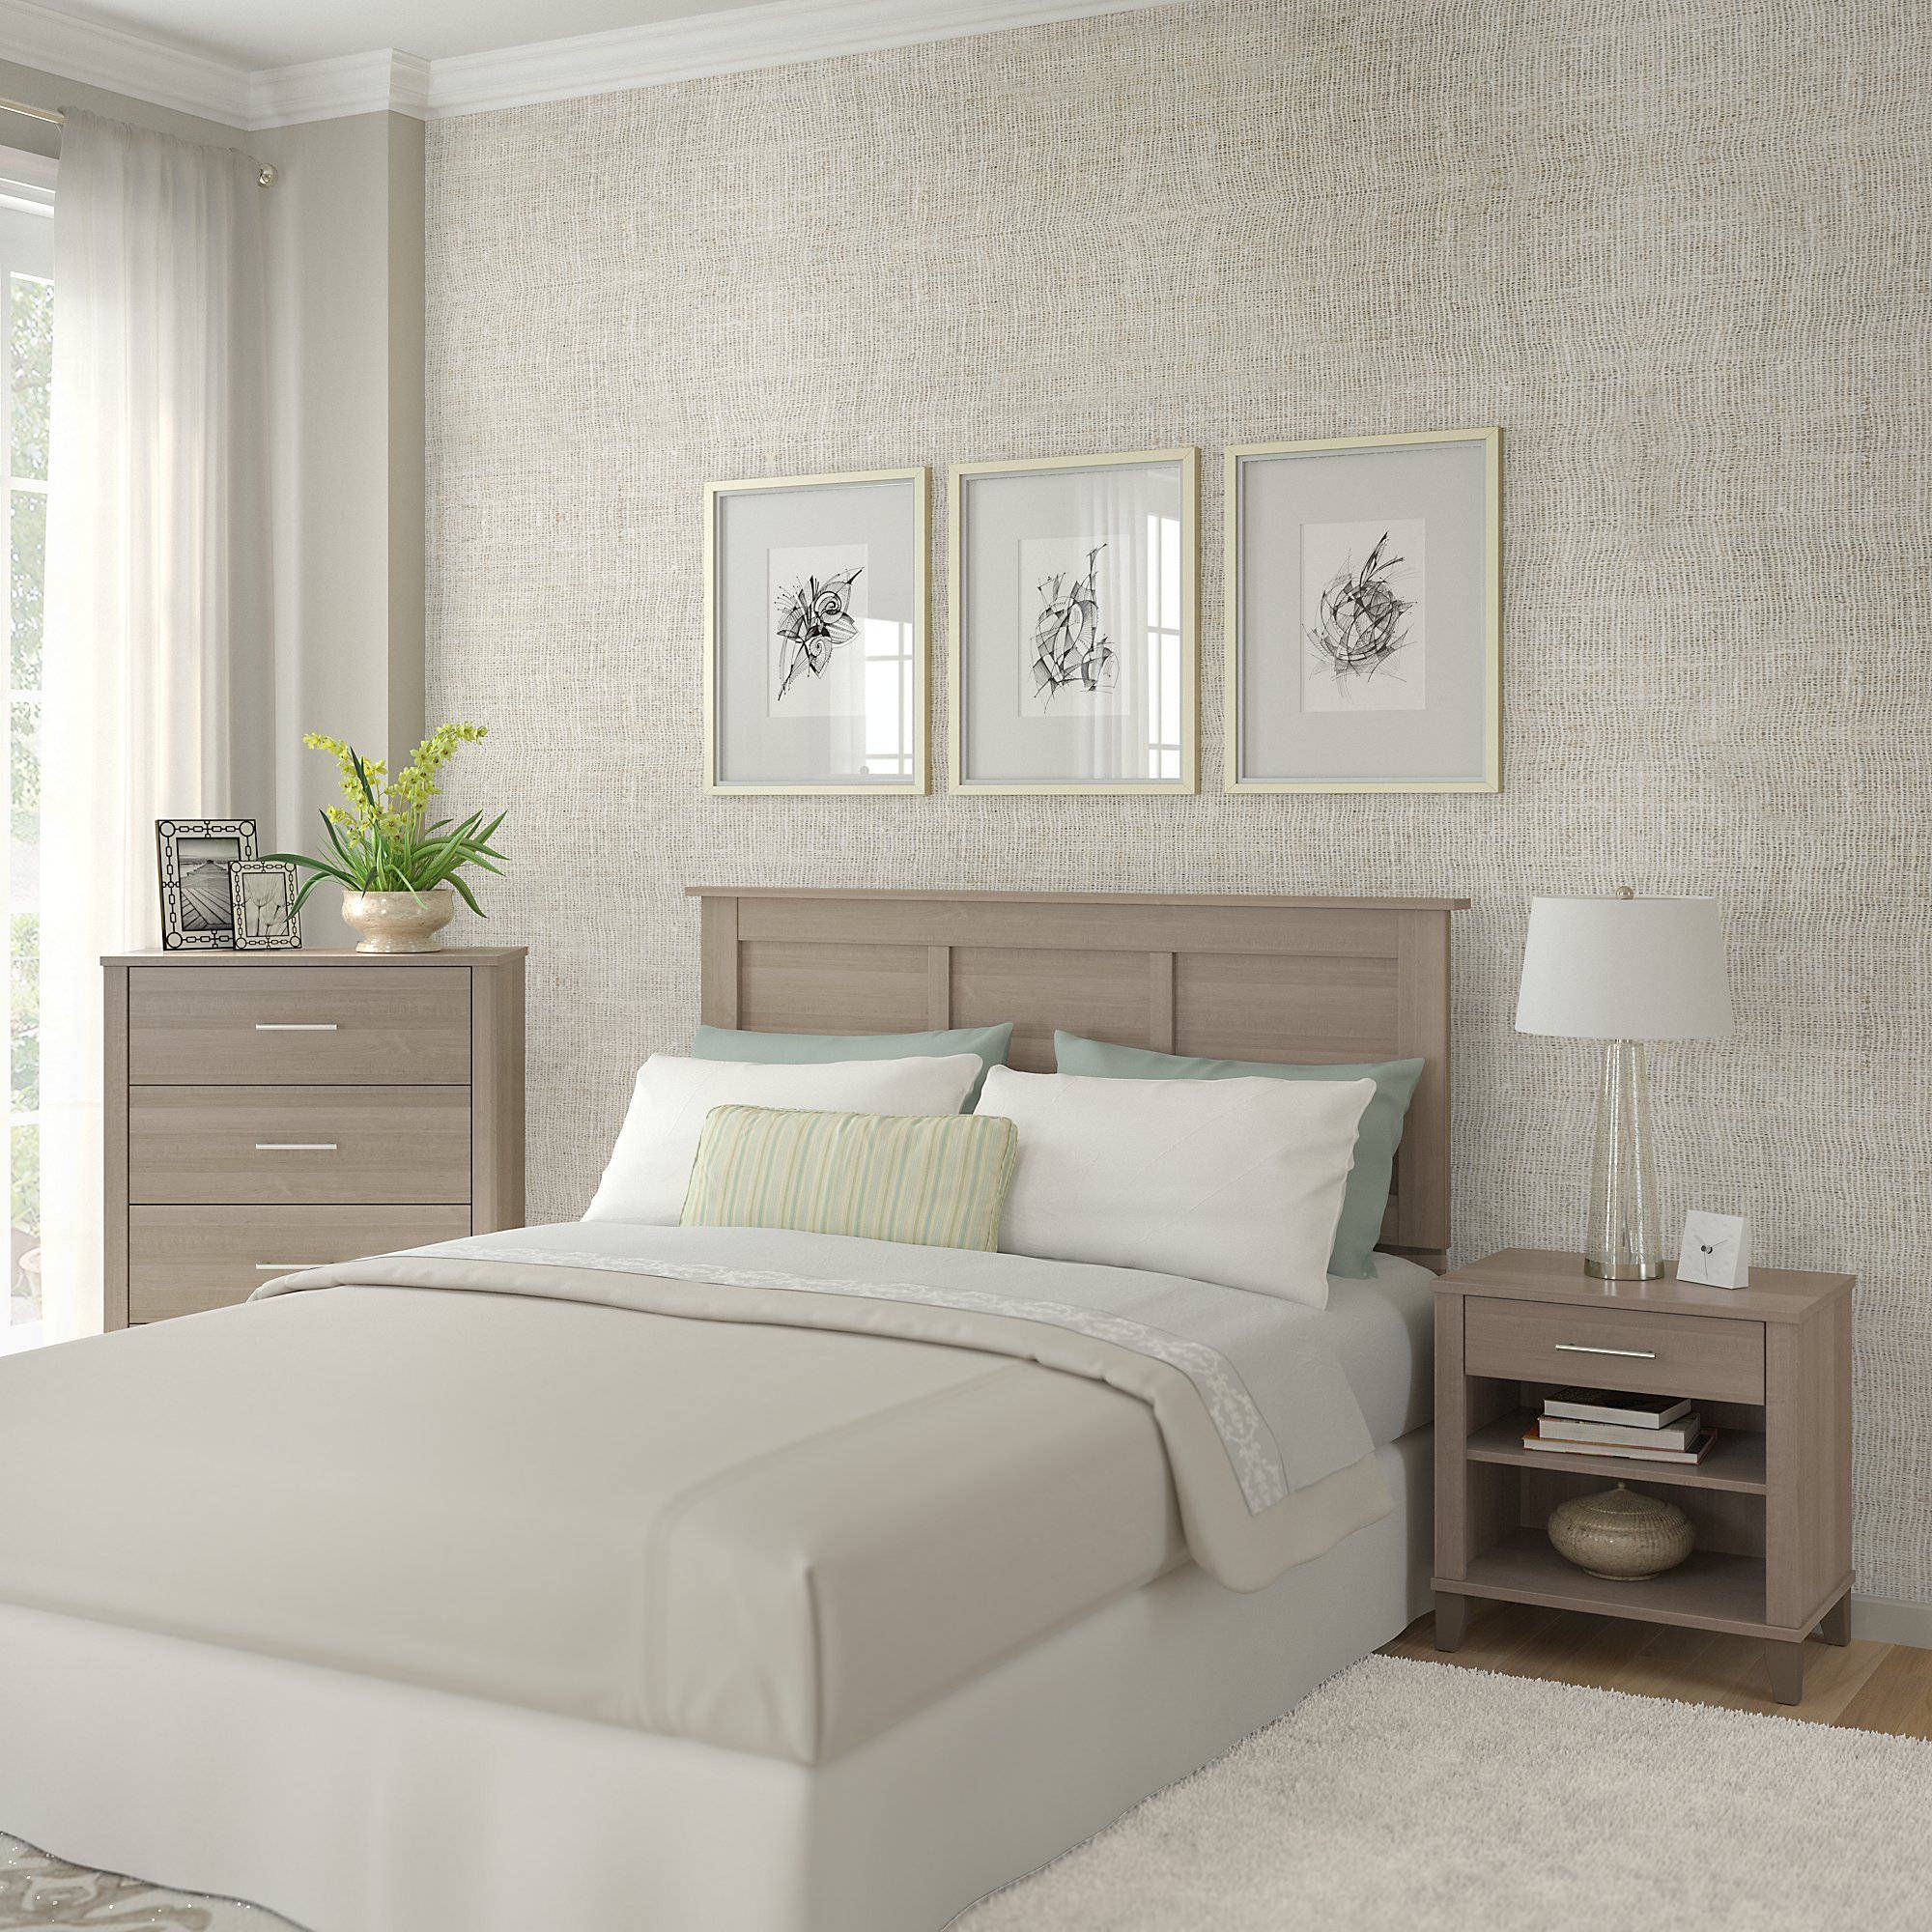 13 Awesome Initiatives Of How To Makeover Somerset Bedroom Set